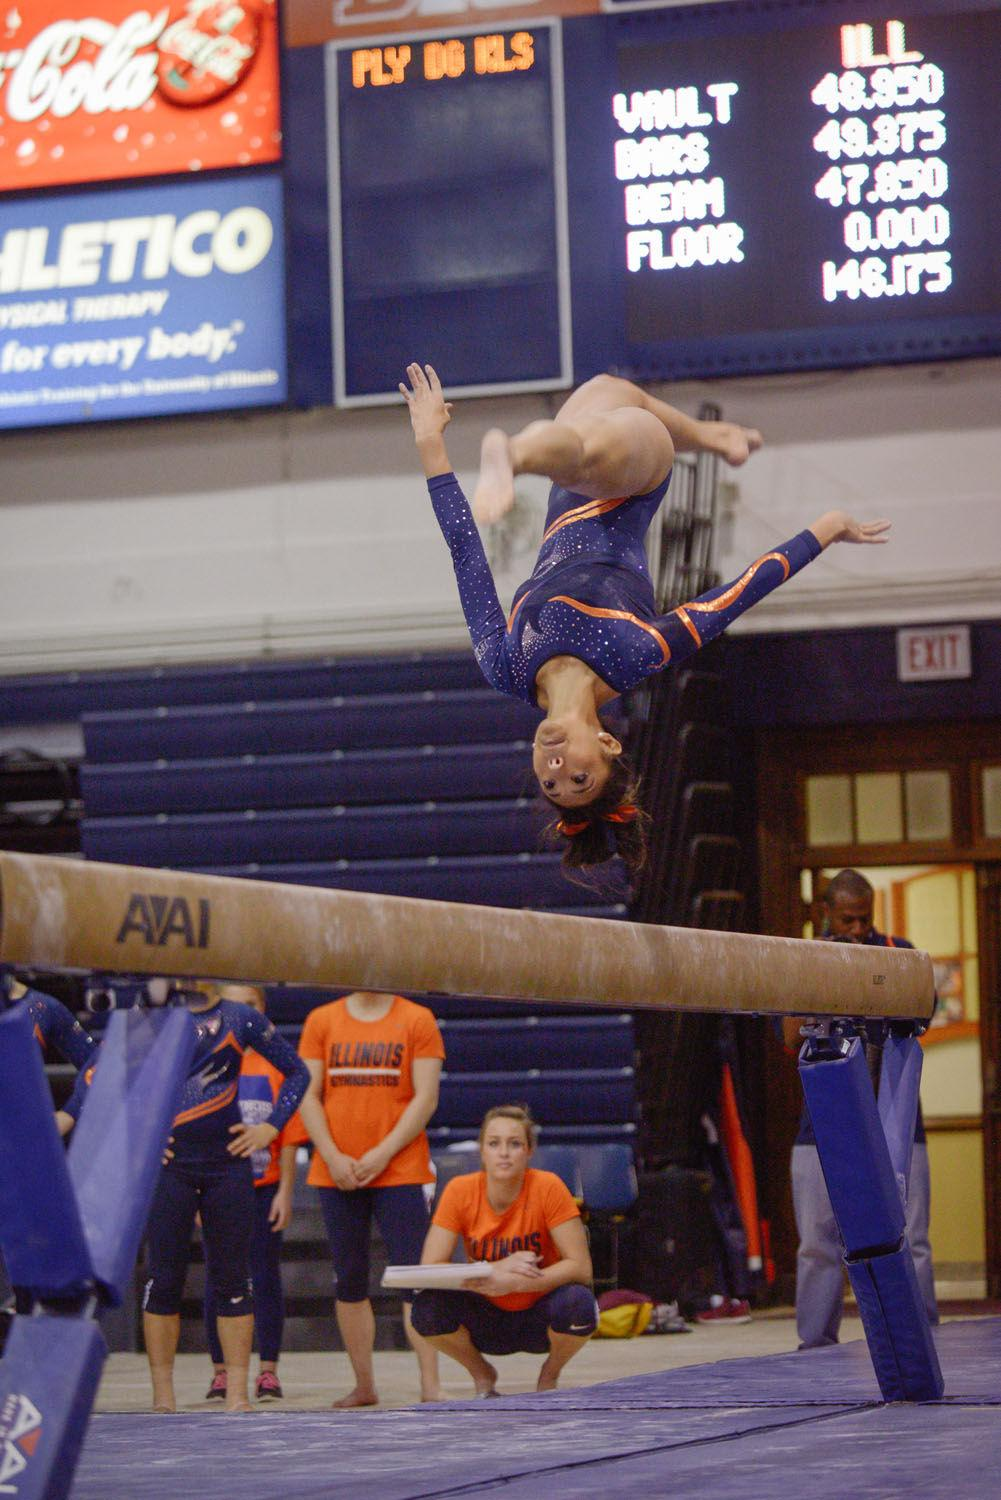 Illinois' Sunny Kato performs a routine on the balance beam during the meet against Minnesota at Huff Hall on Feb. 7.